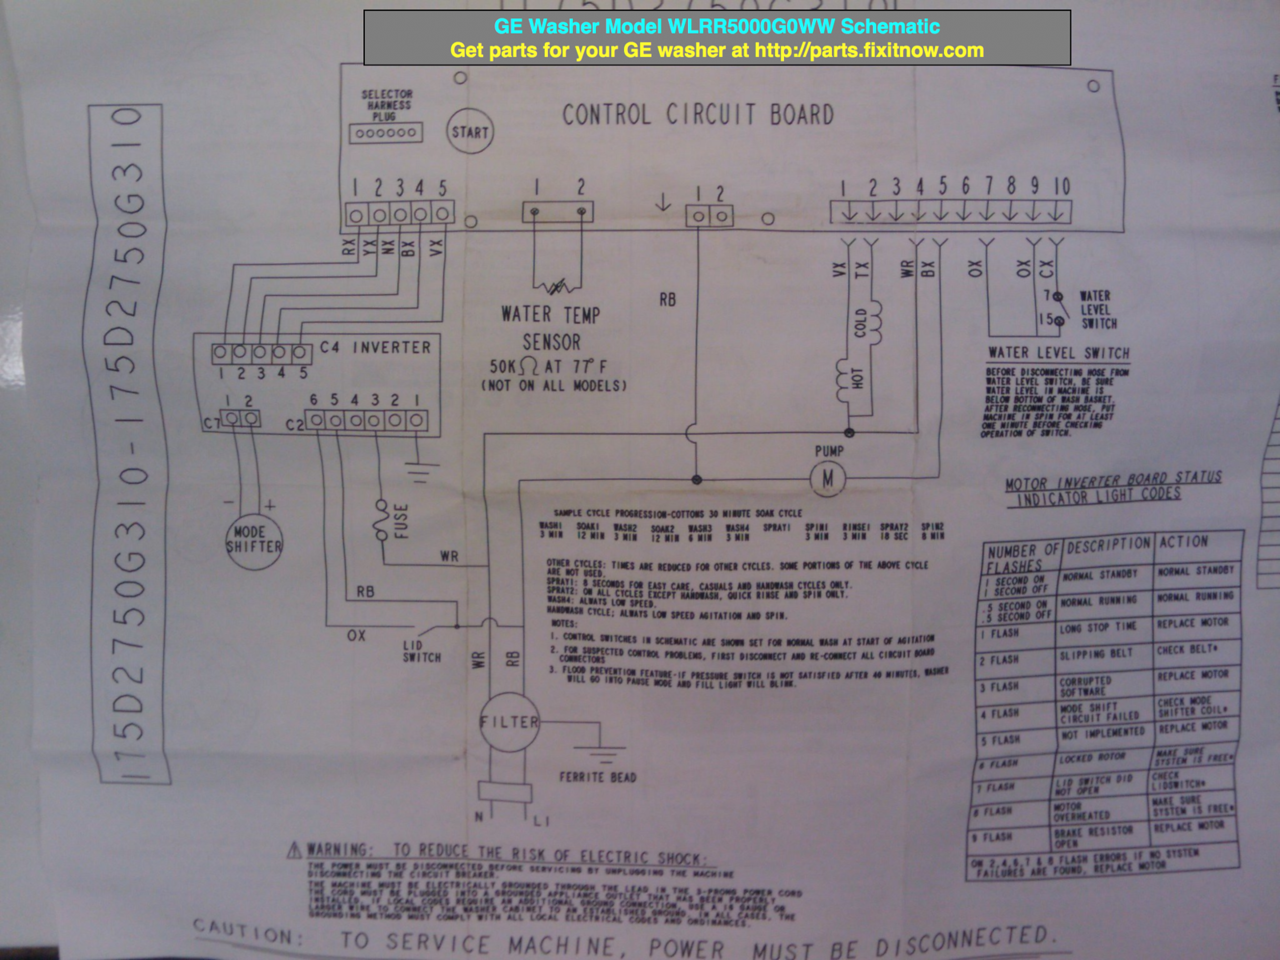 GE Washer Model WLRR5000G0WW Schematic